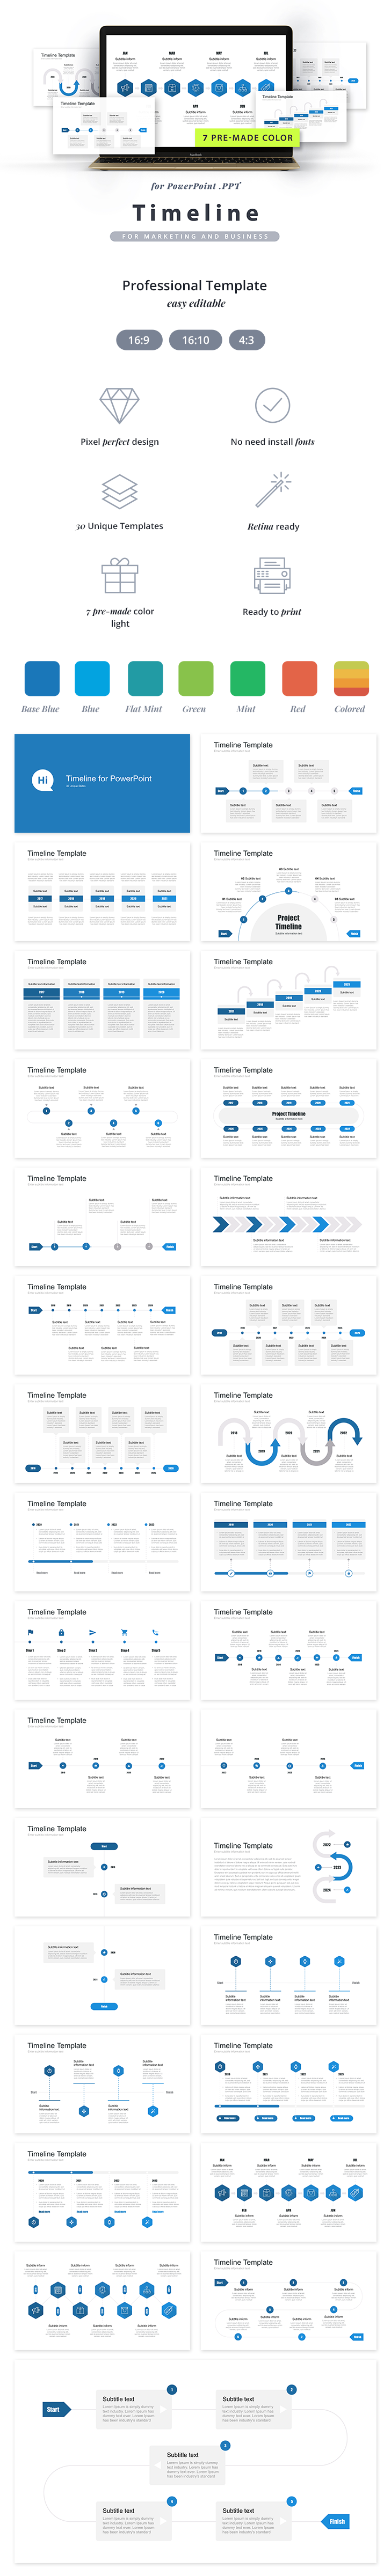 powerpoint-timeline-template